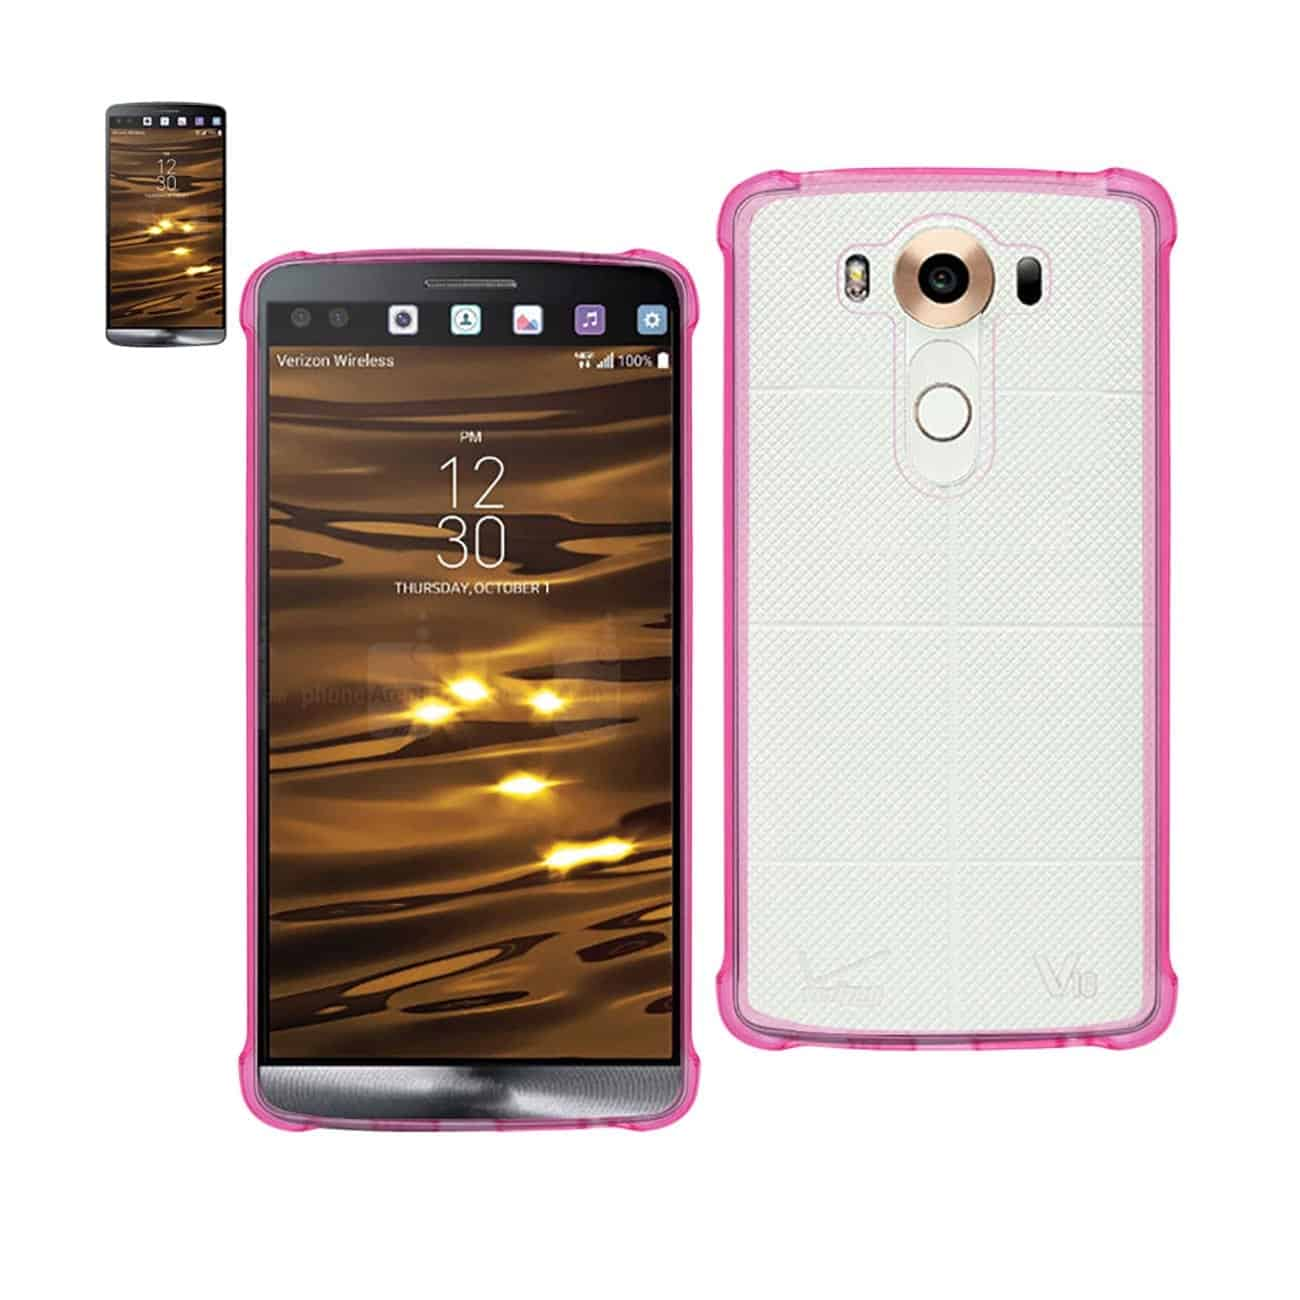 LG V10 MIRROR EFFECT CASE WITH AIR CUSHION PROTECTION IN CLEAR HOT PINK